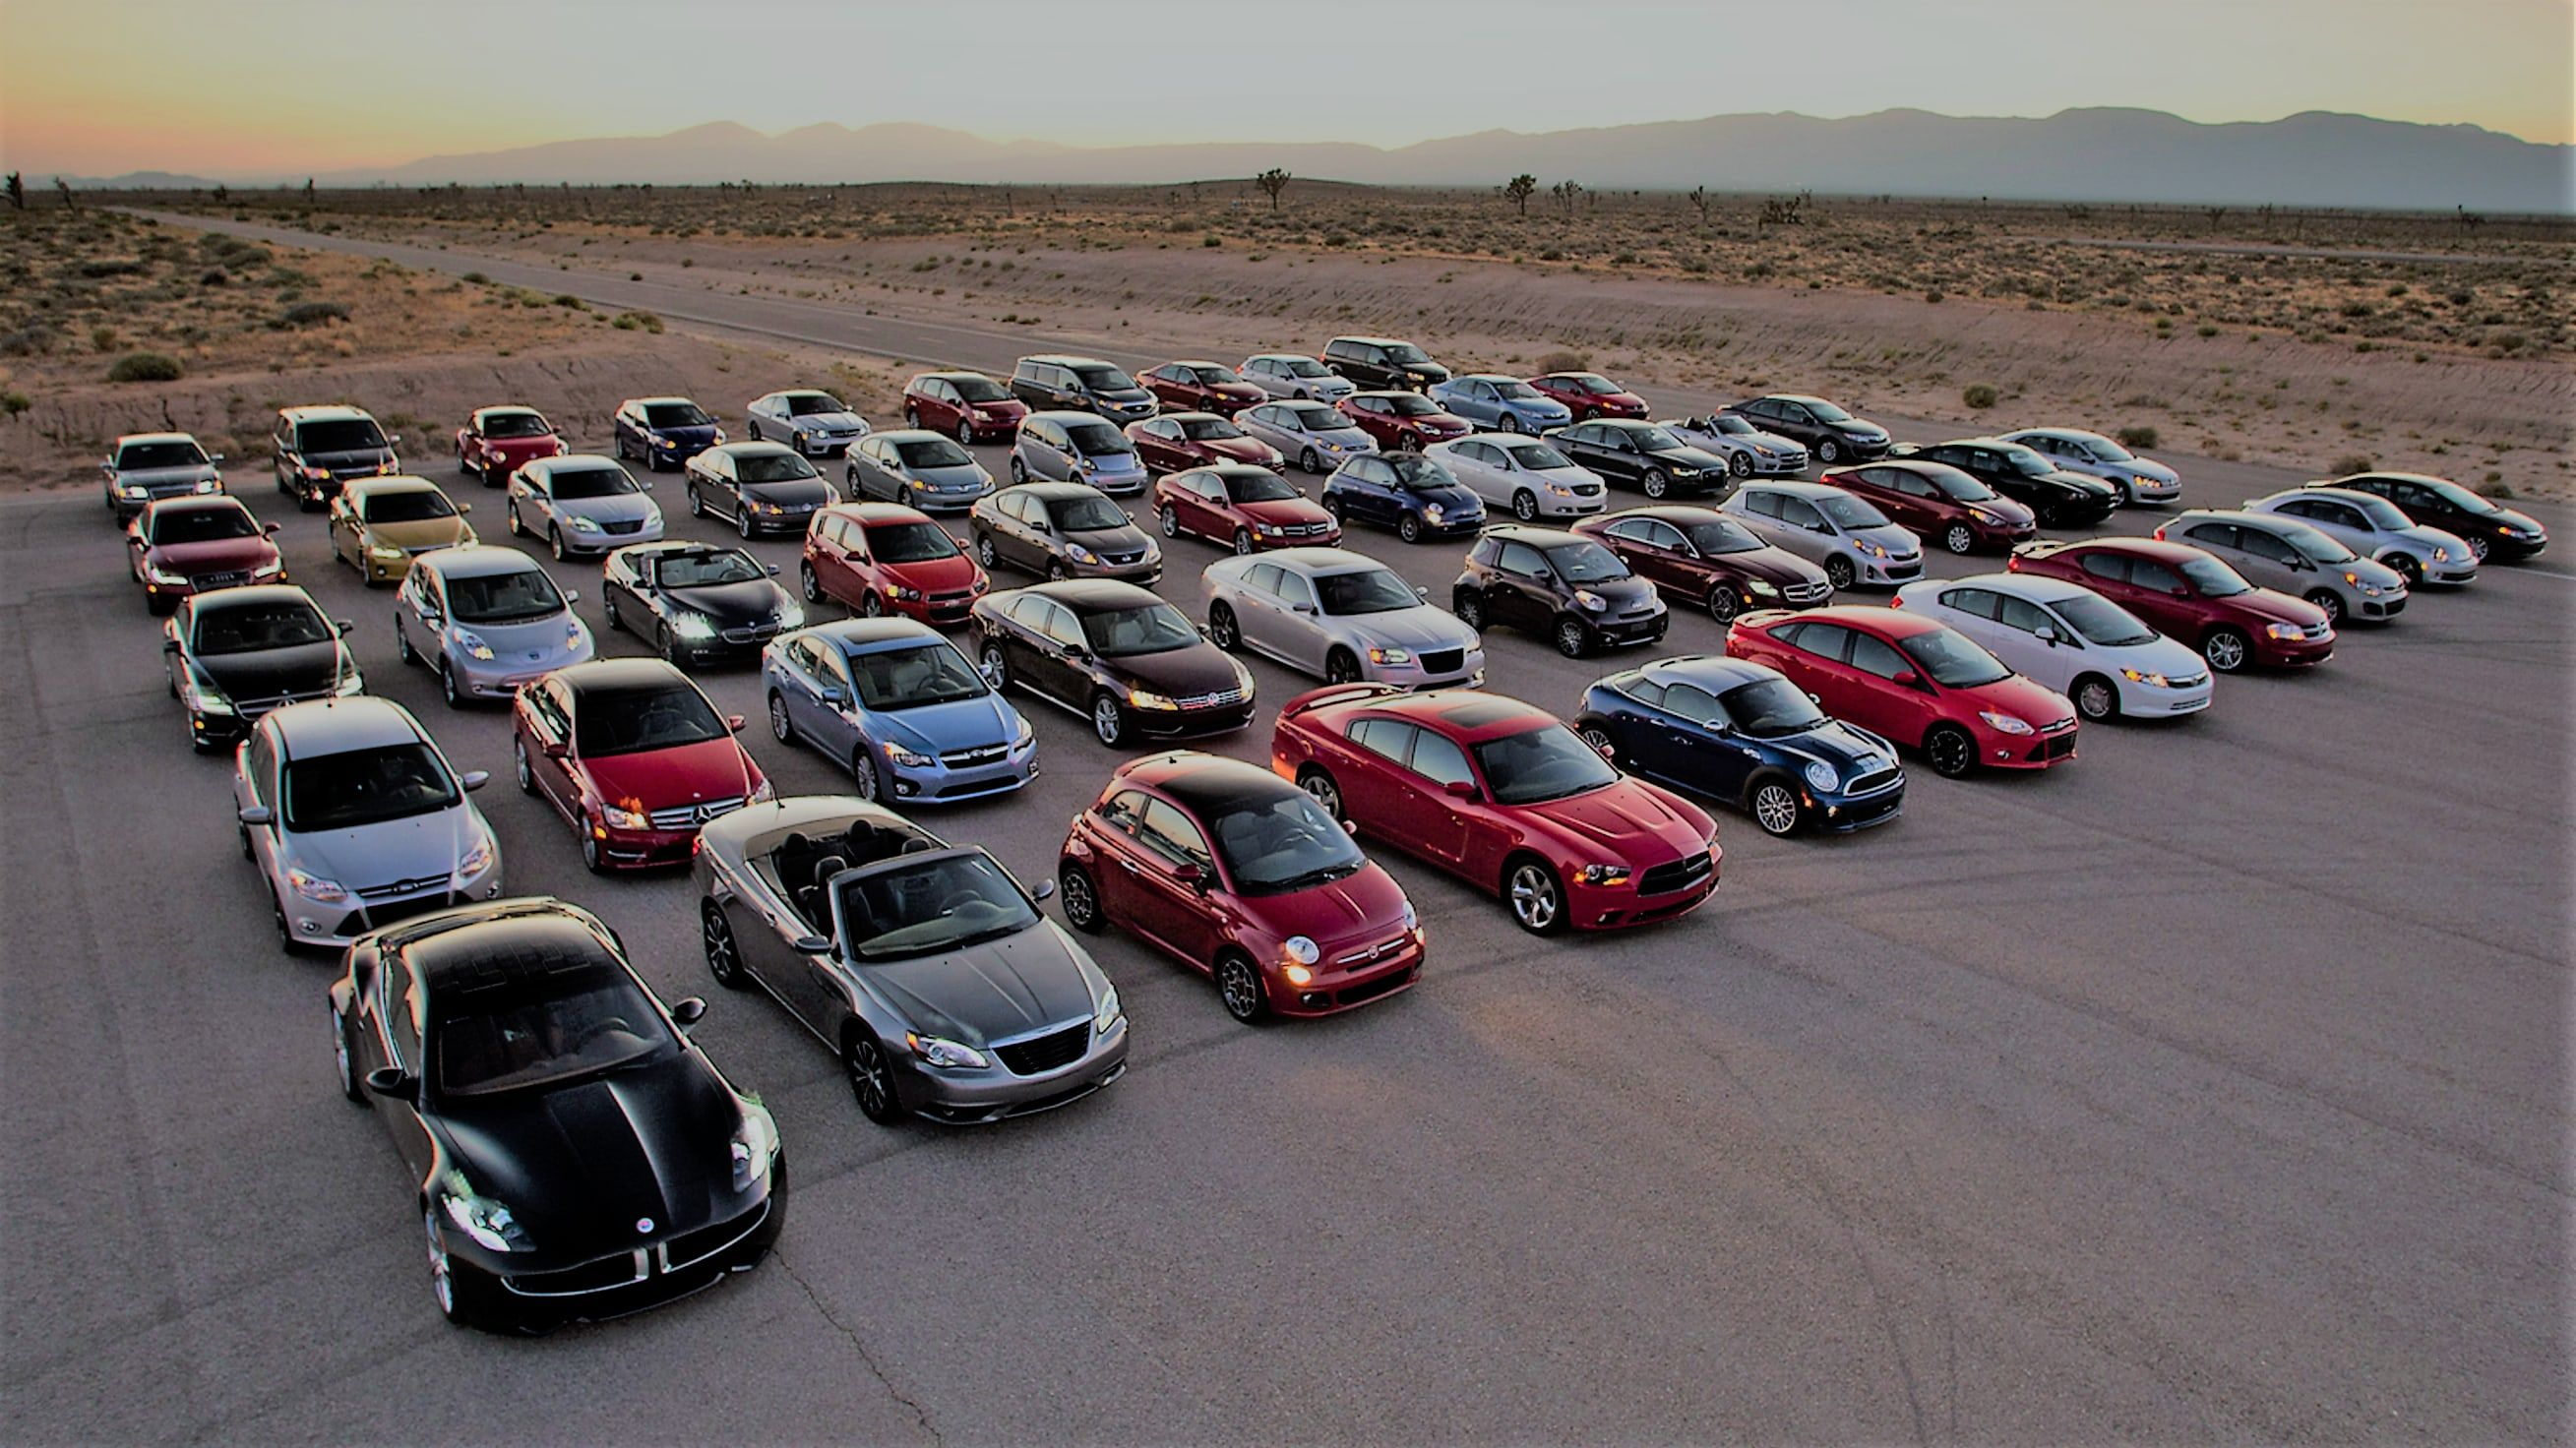 Different cars from different countries